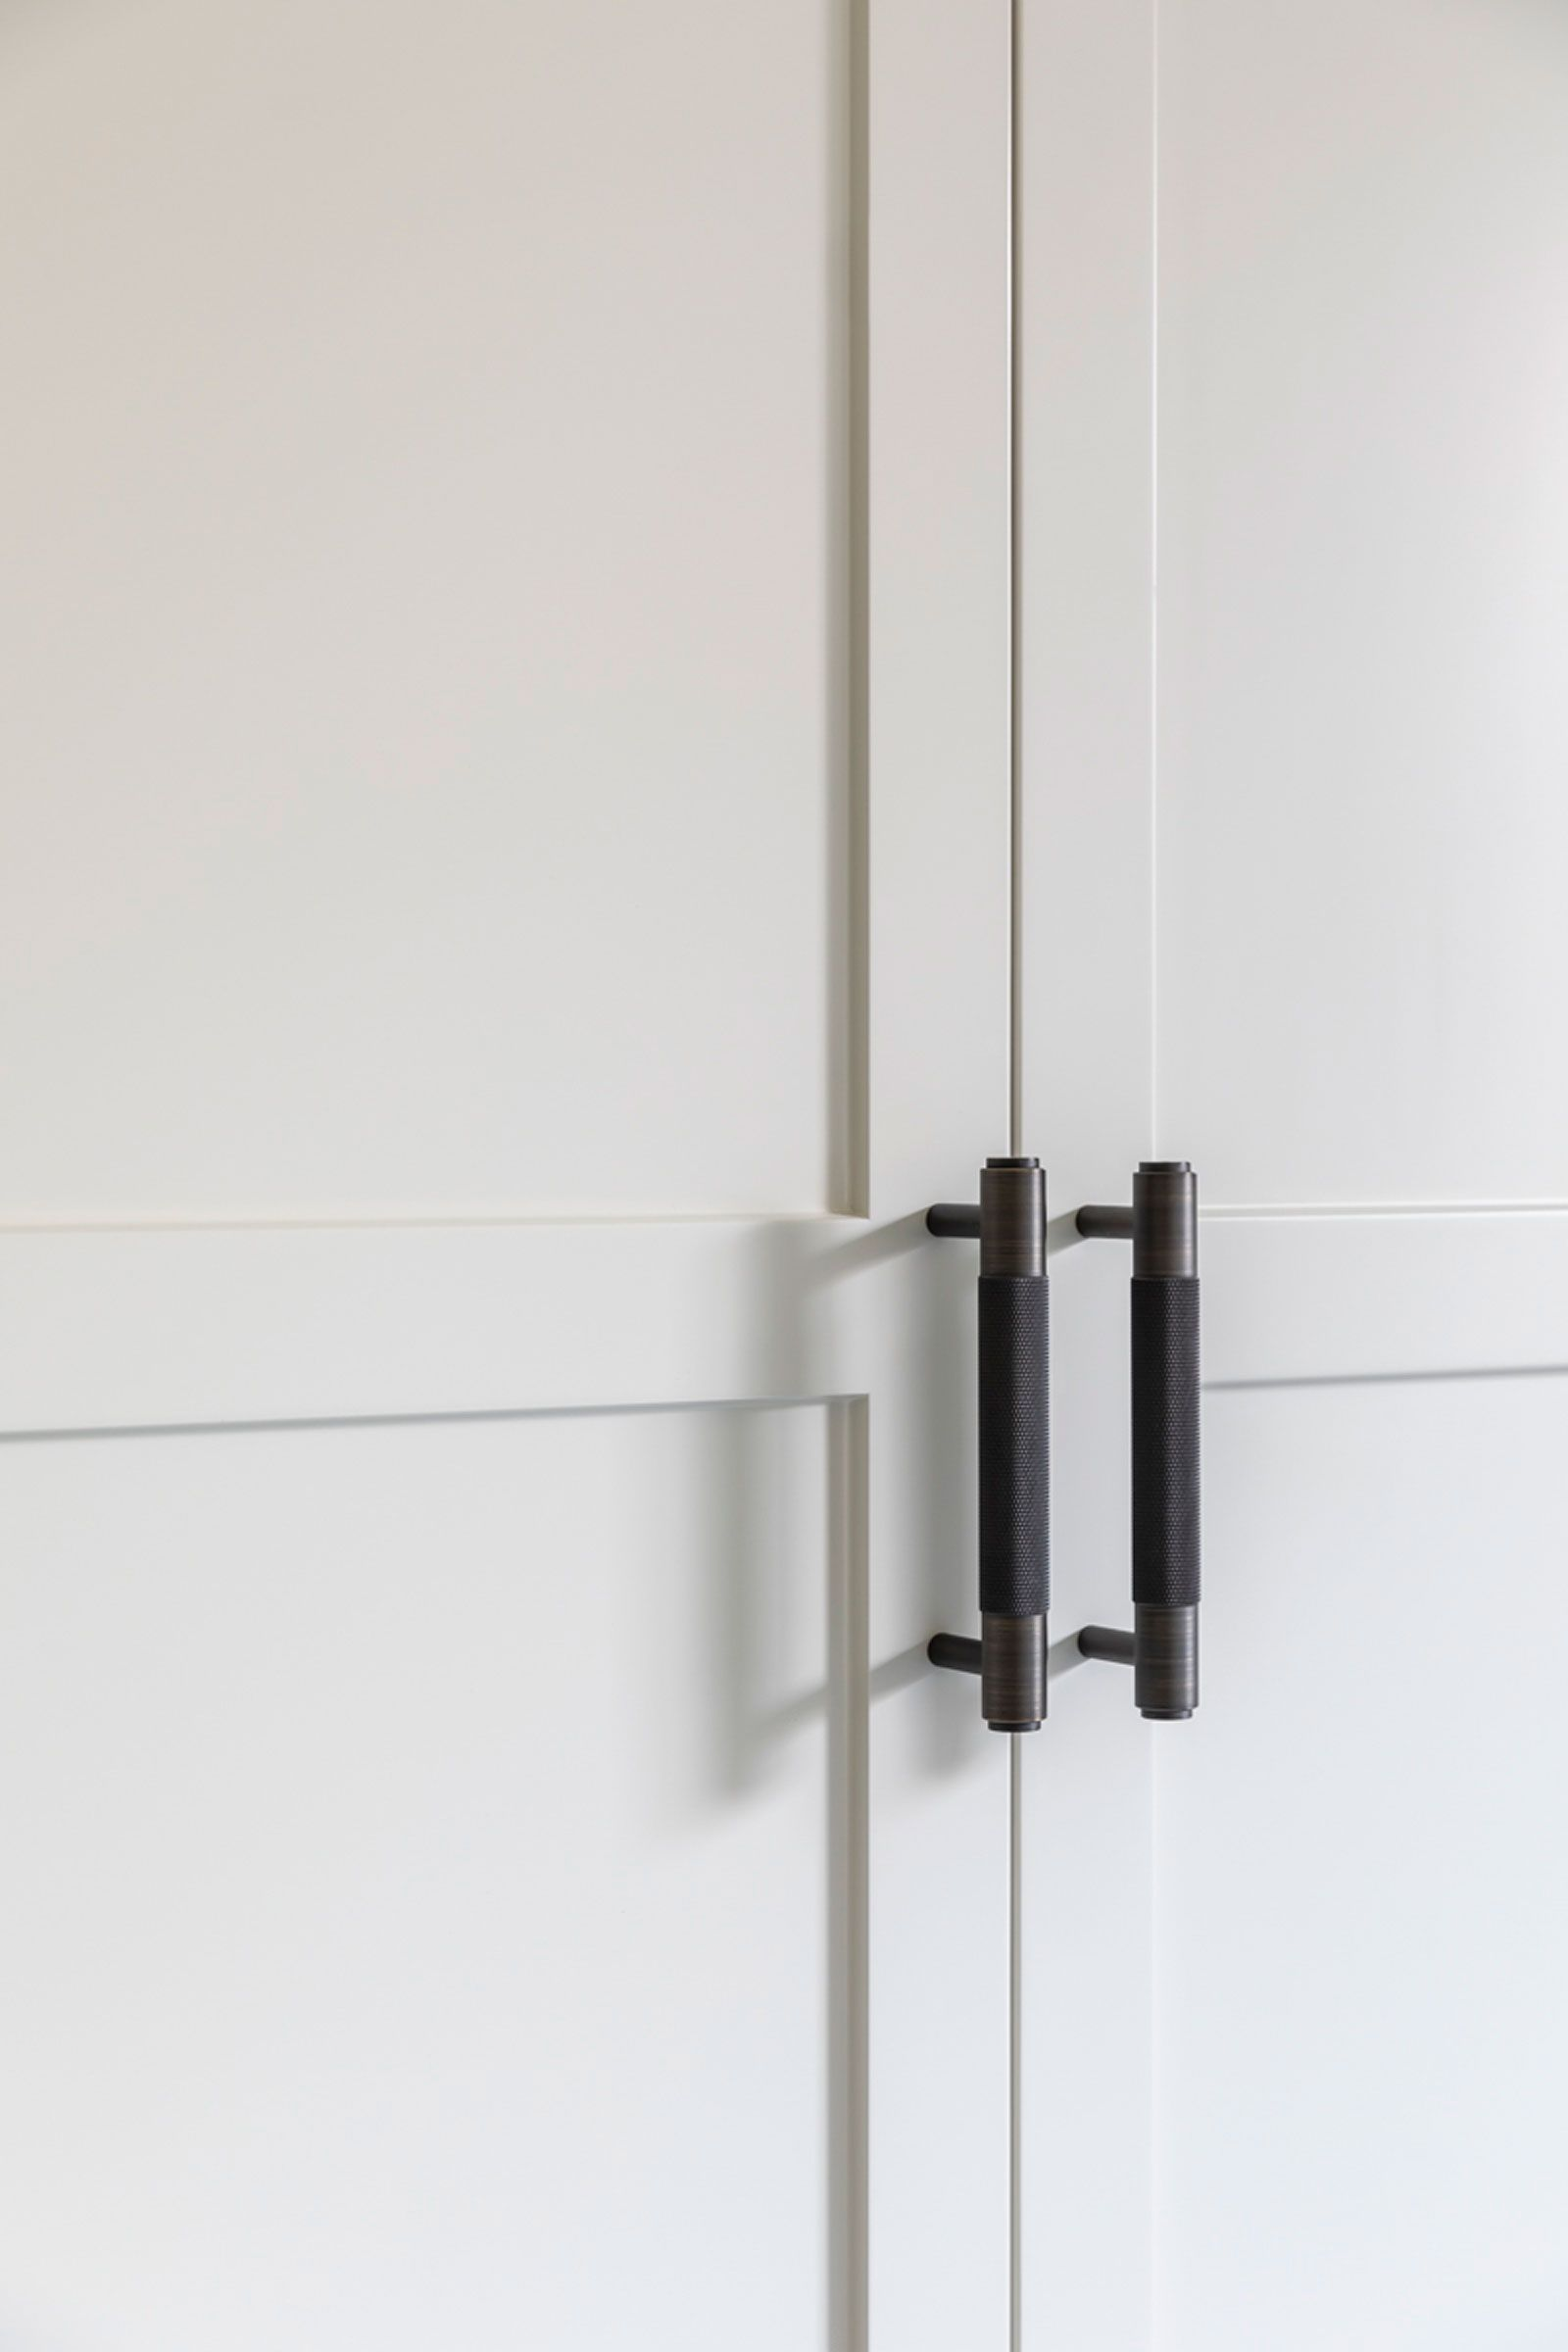 Lindfield House By Daniel Boddam Project Feature Lindfield Nsw Australia In 2020 Steel Framed Shower Doors Door Handle Design Framed Shower Door